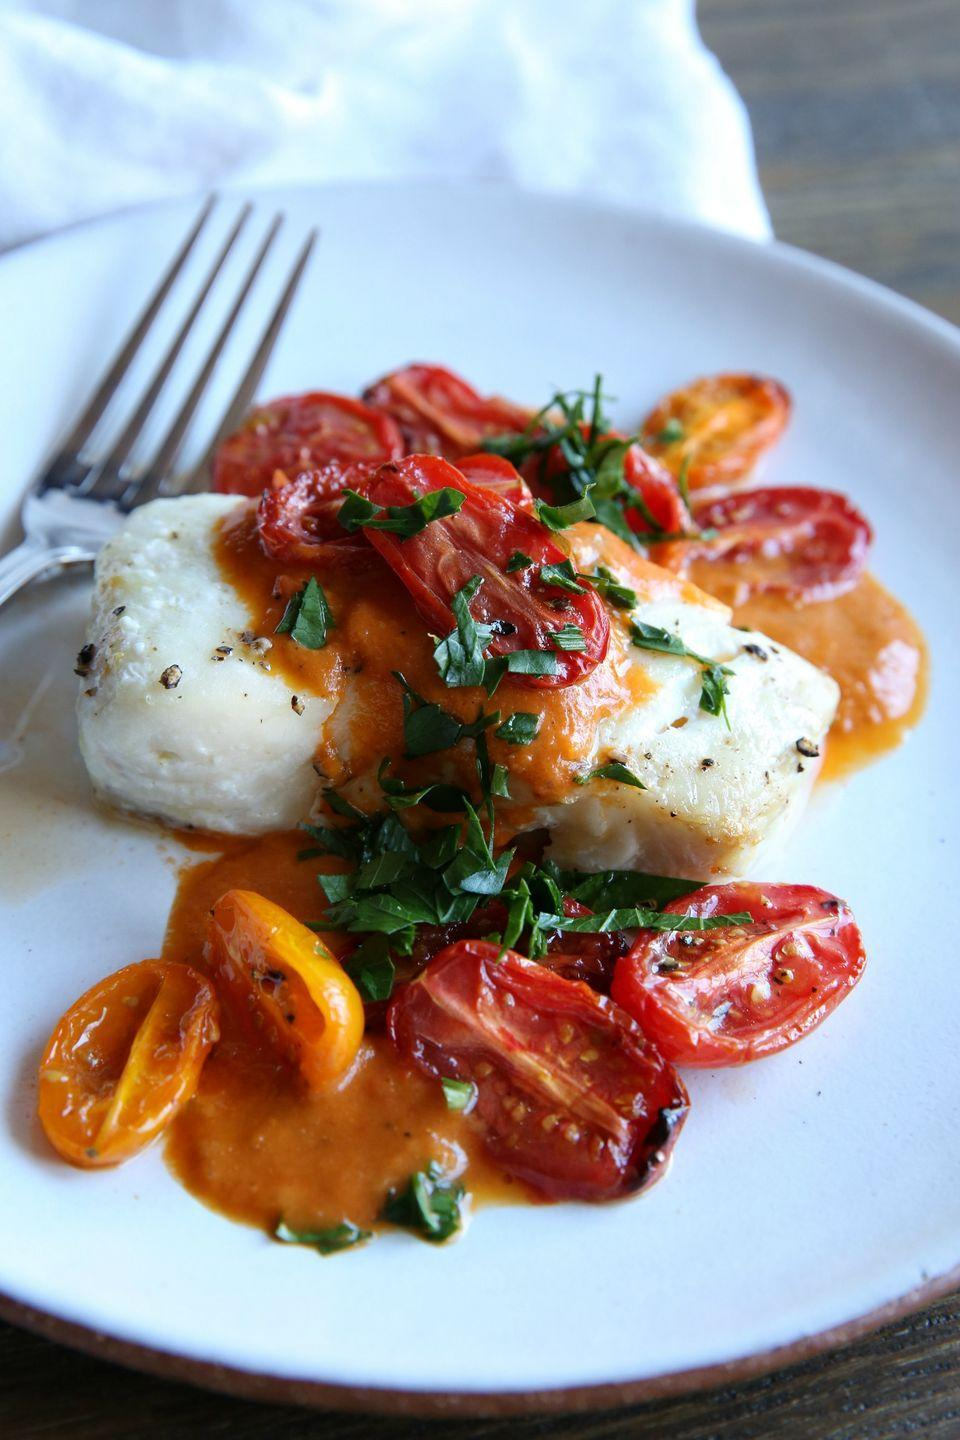 "<p>The perfect light and bright weeknight meal.</p><p>Get the recipe from <a href=""https://www.delish.com/cooking/recipe-ideas/recipes/a46517/roasted-cod-with-tomato-cream-sauce-recipe/"" rel=""nofollow noopener"" target=""_blank"" data-ylk=""slk:Delish"" class=""link rapid-noclick-resp"">Delish</a>.</p>"